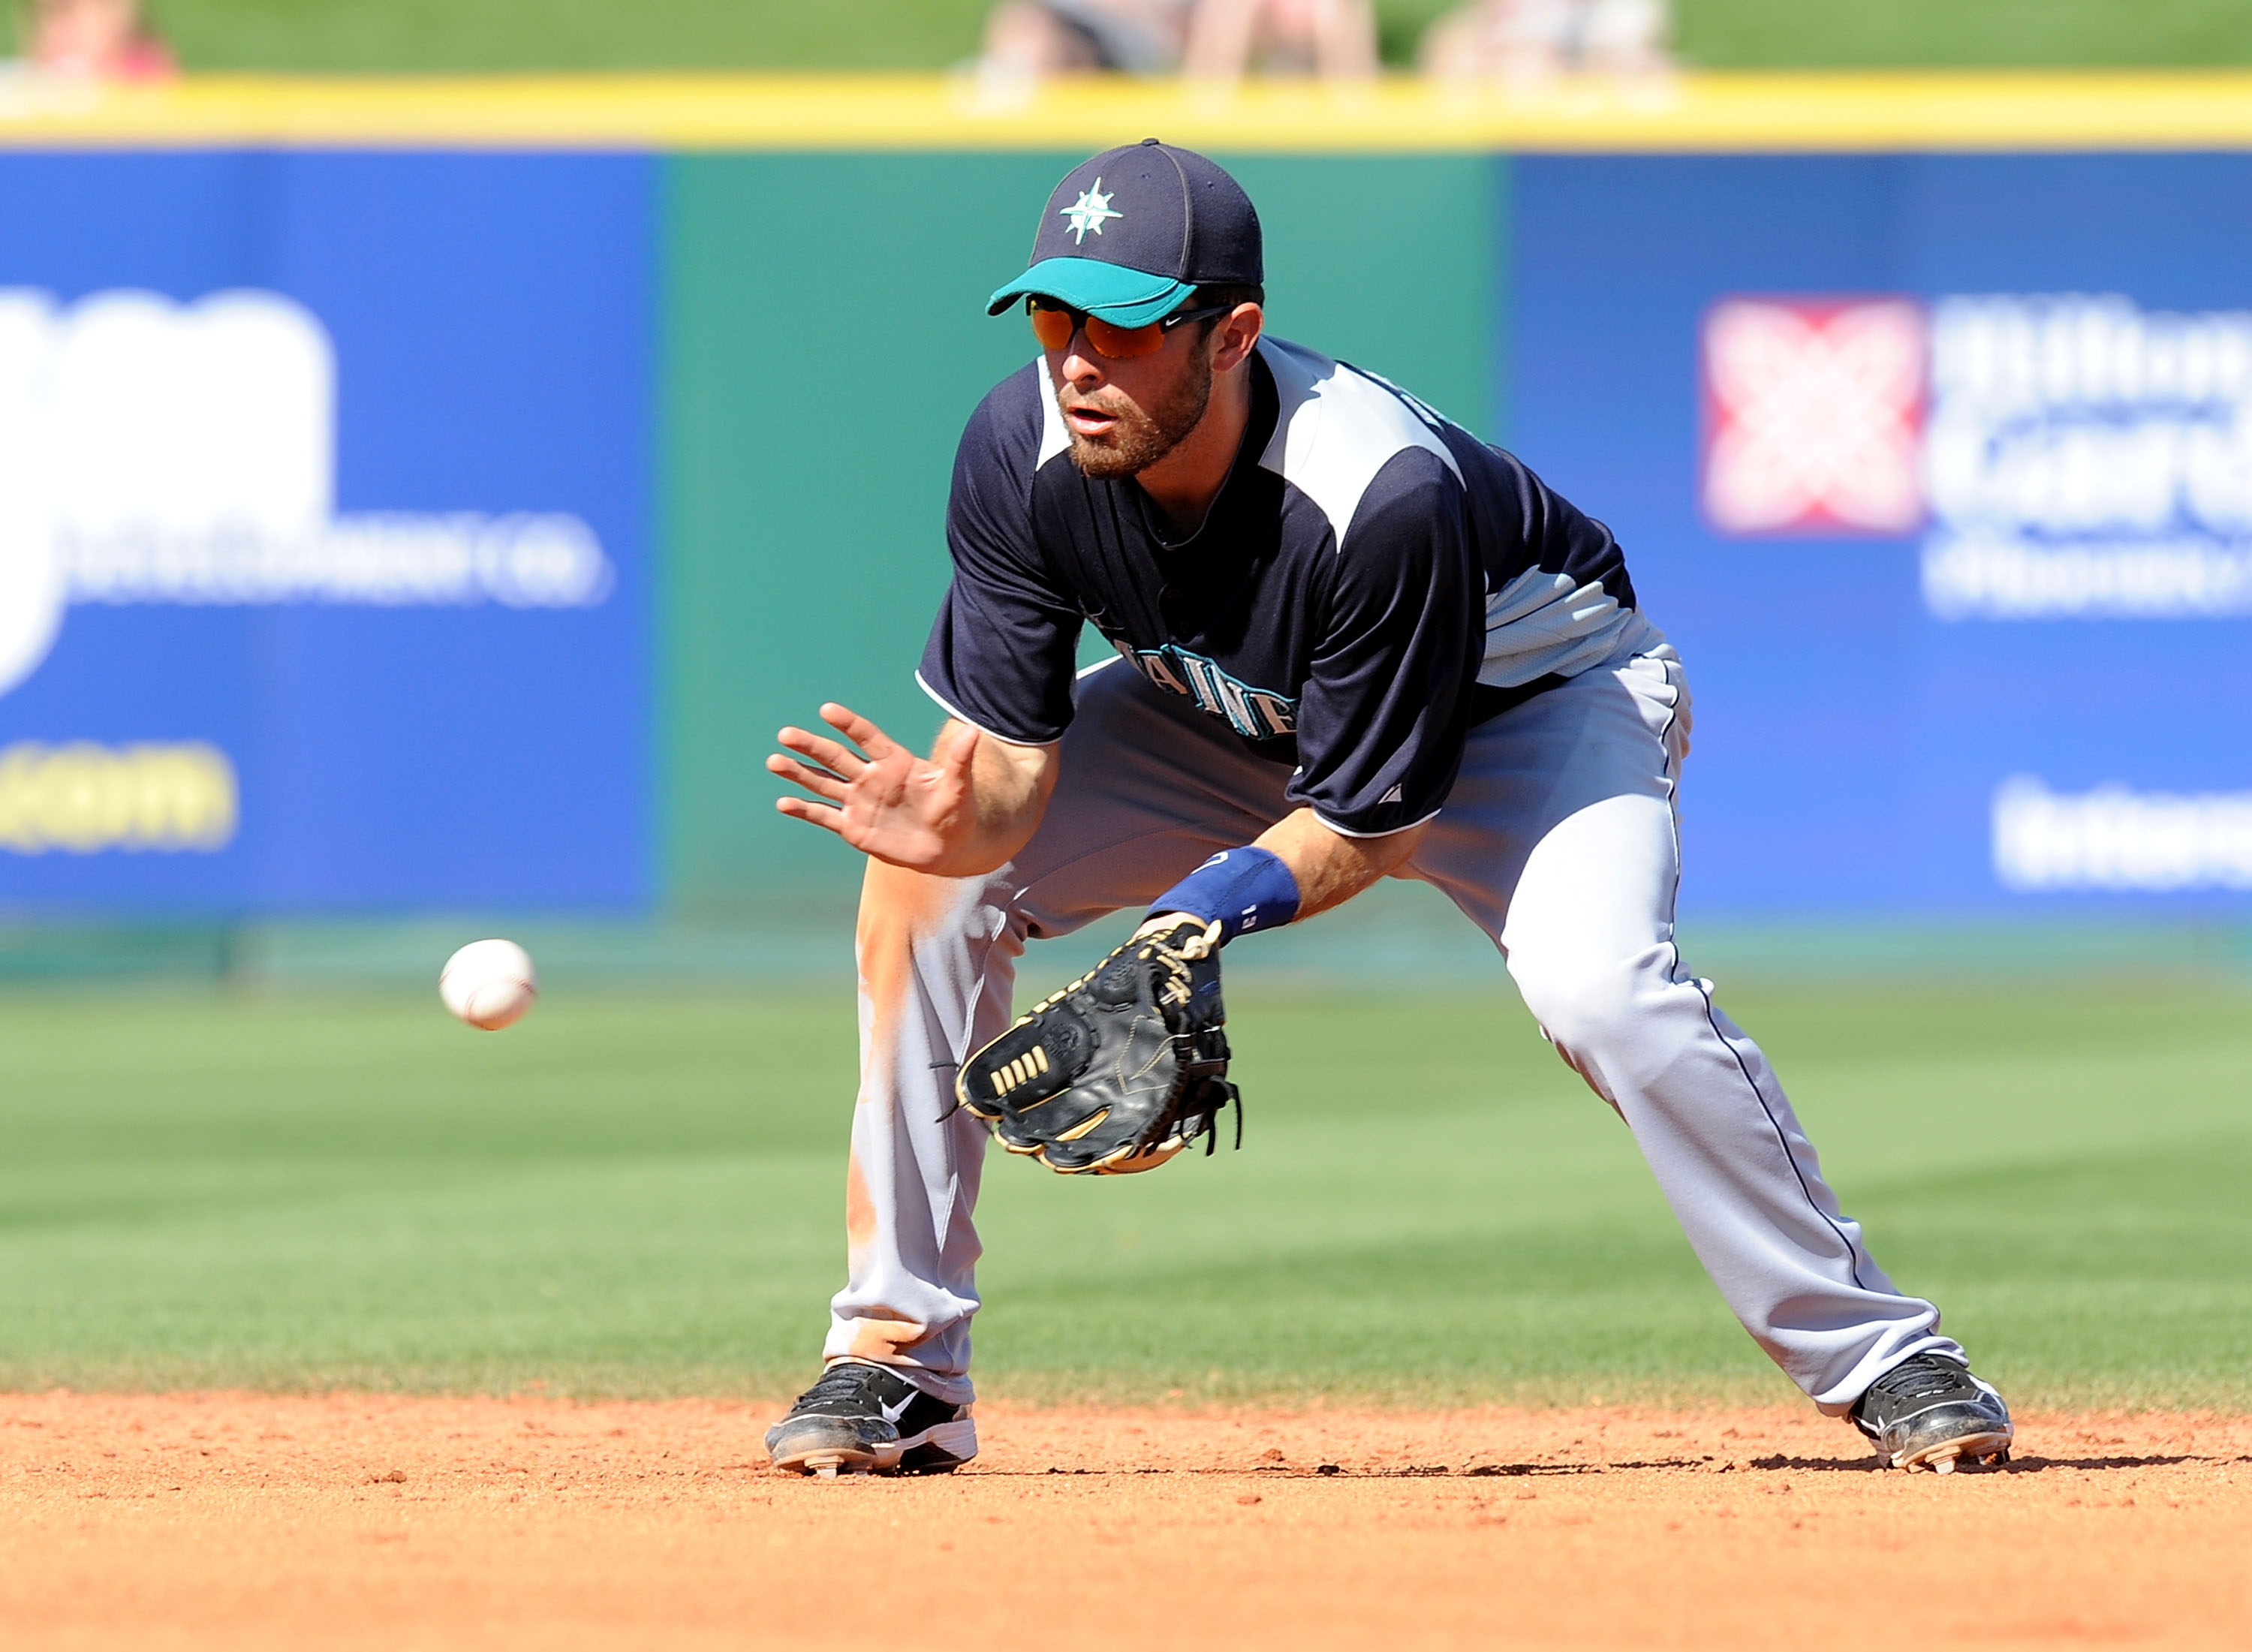 GOODYEAR, AZ - MARCH 11:  Dustin Ackley #13 of the Seattle Mariners fields a ground ball against the Cleveland Indians at Goodyear Ballpark on March 11, 2011 in Goodyear, Arizona.  (Photo by Norm Hall/Getty Images)